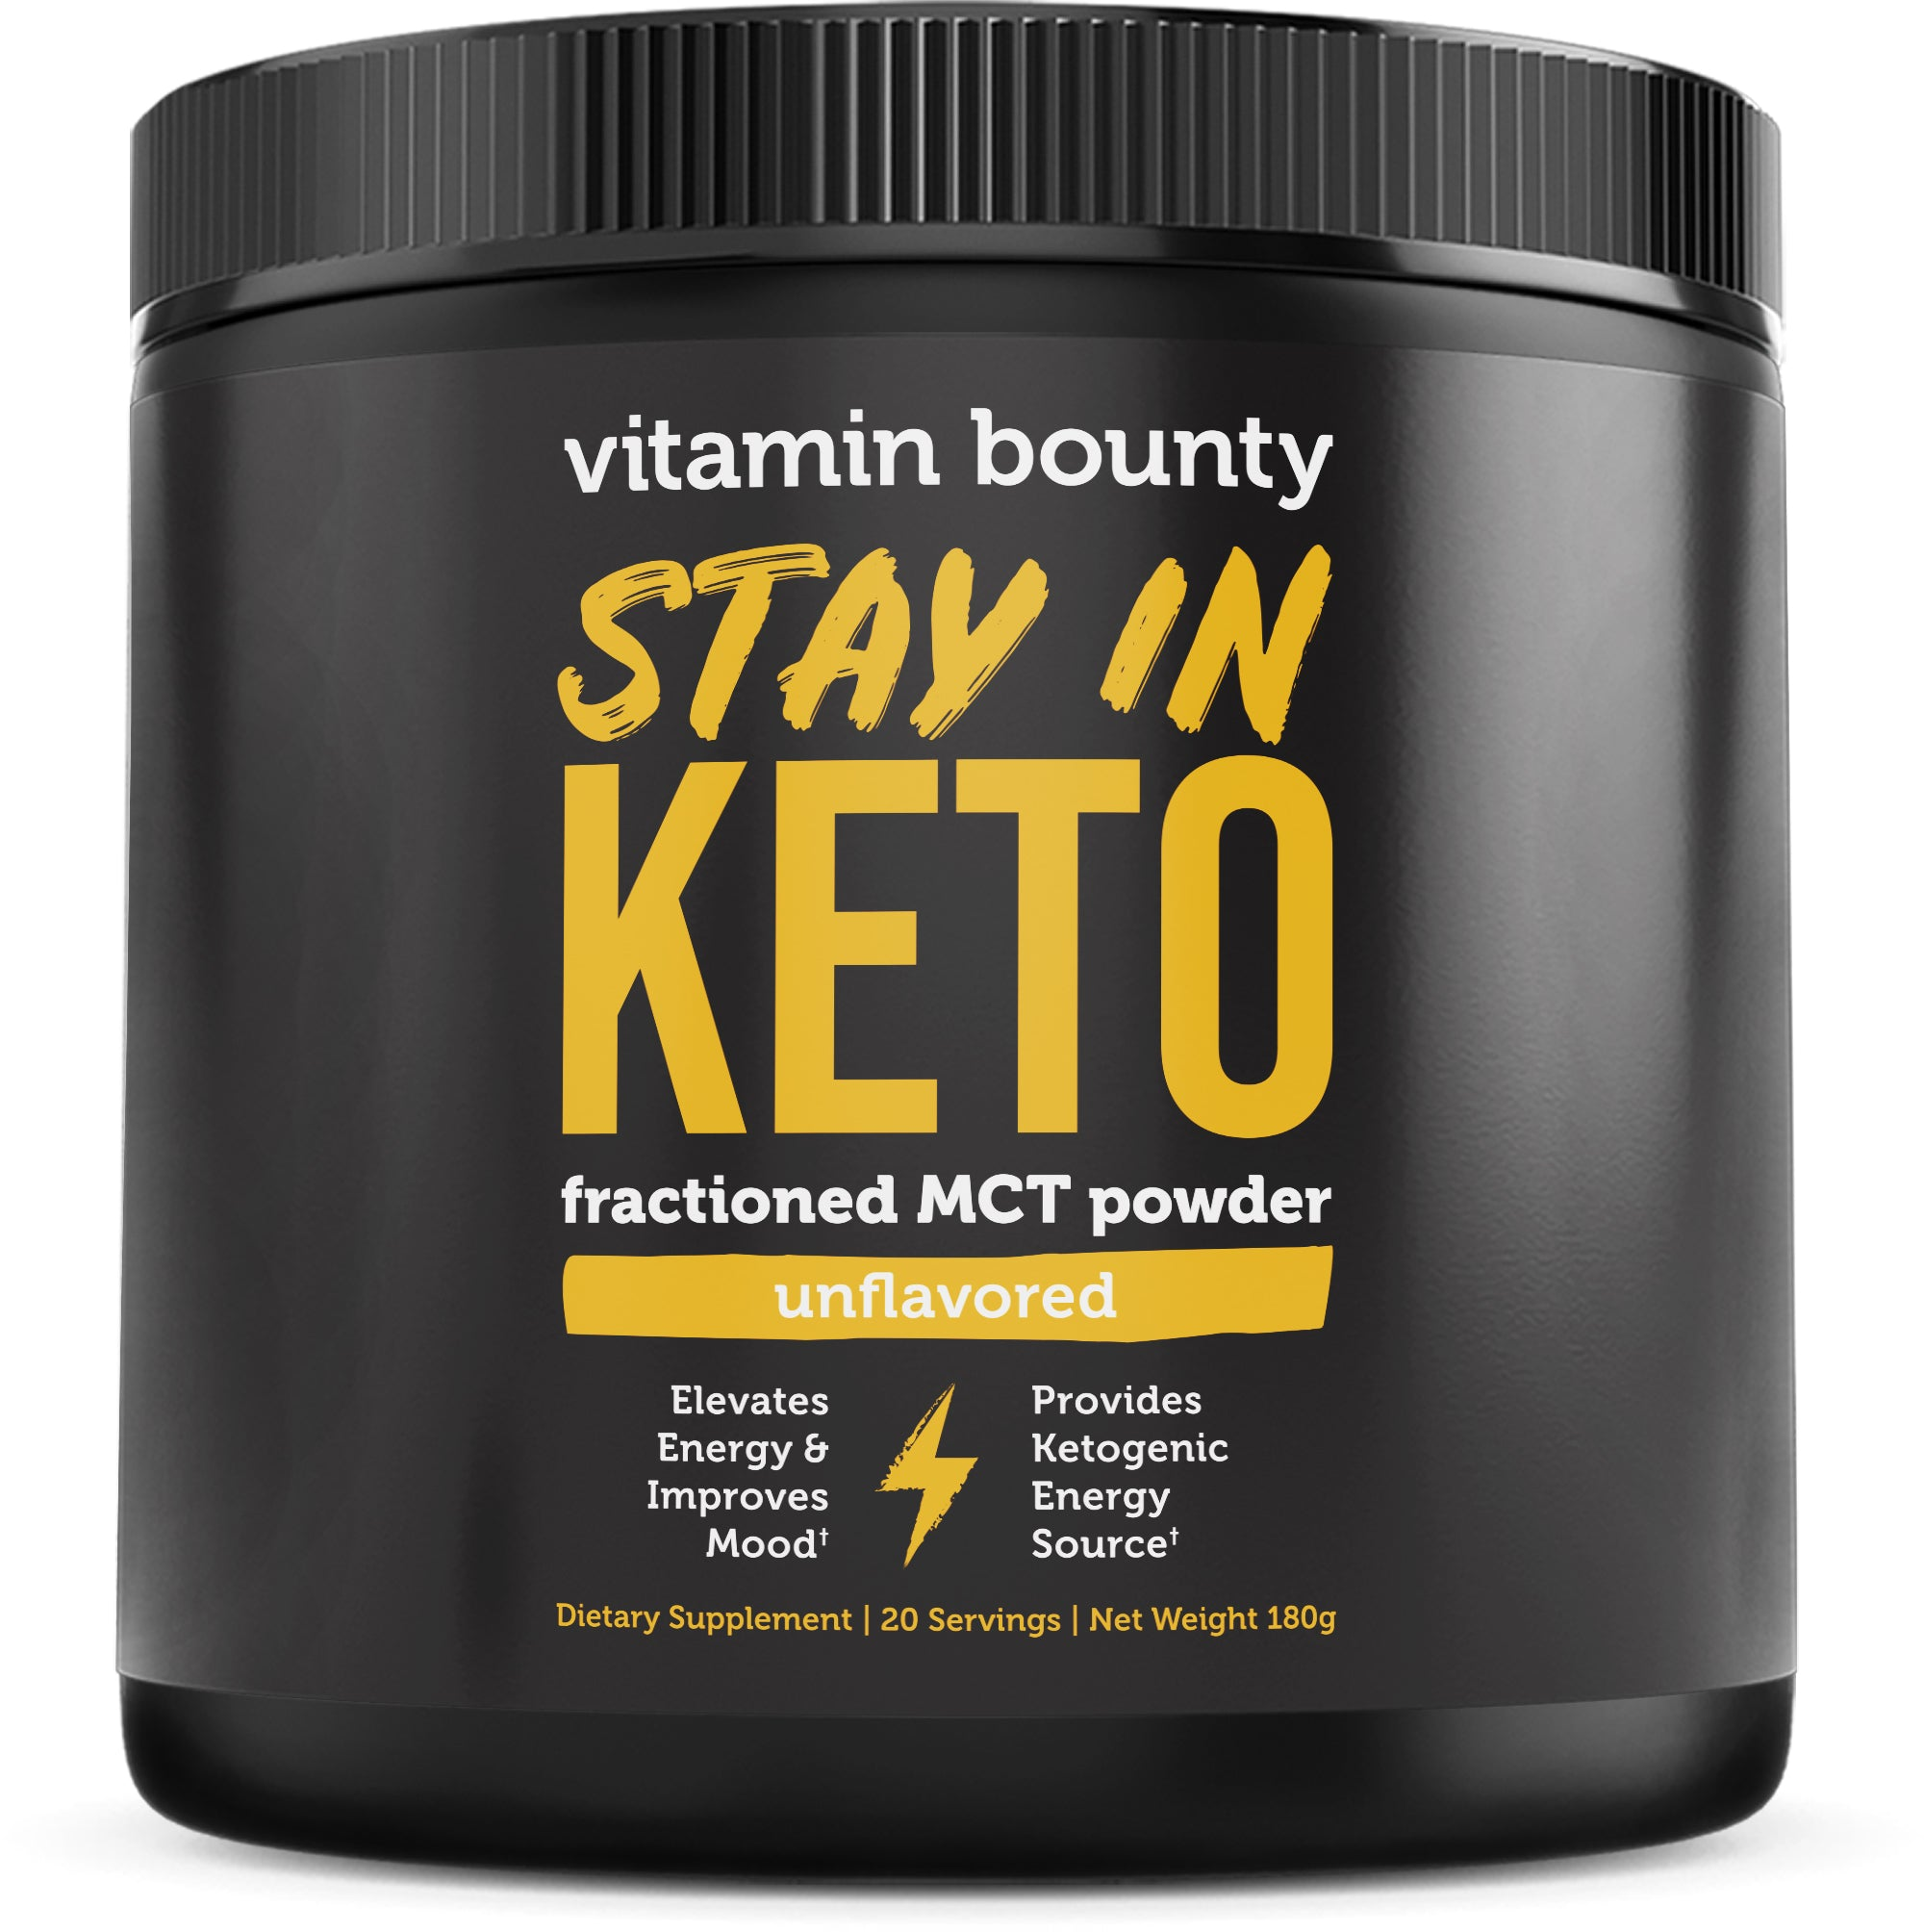 Stay in Keto